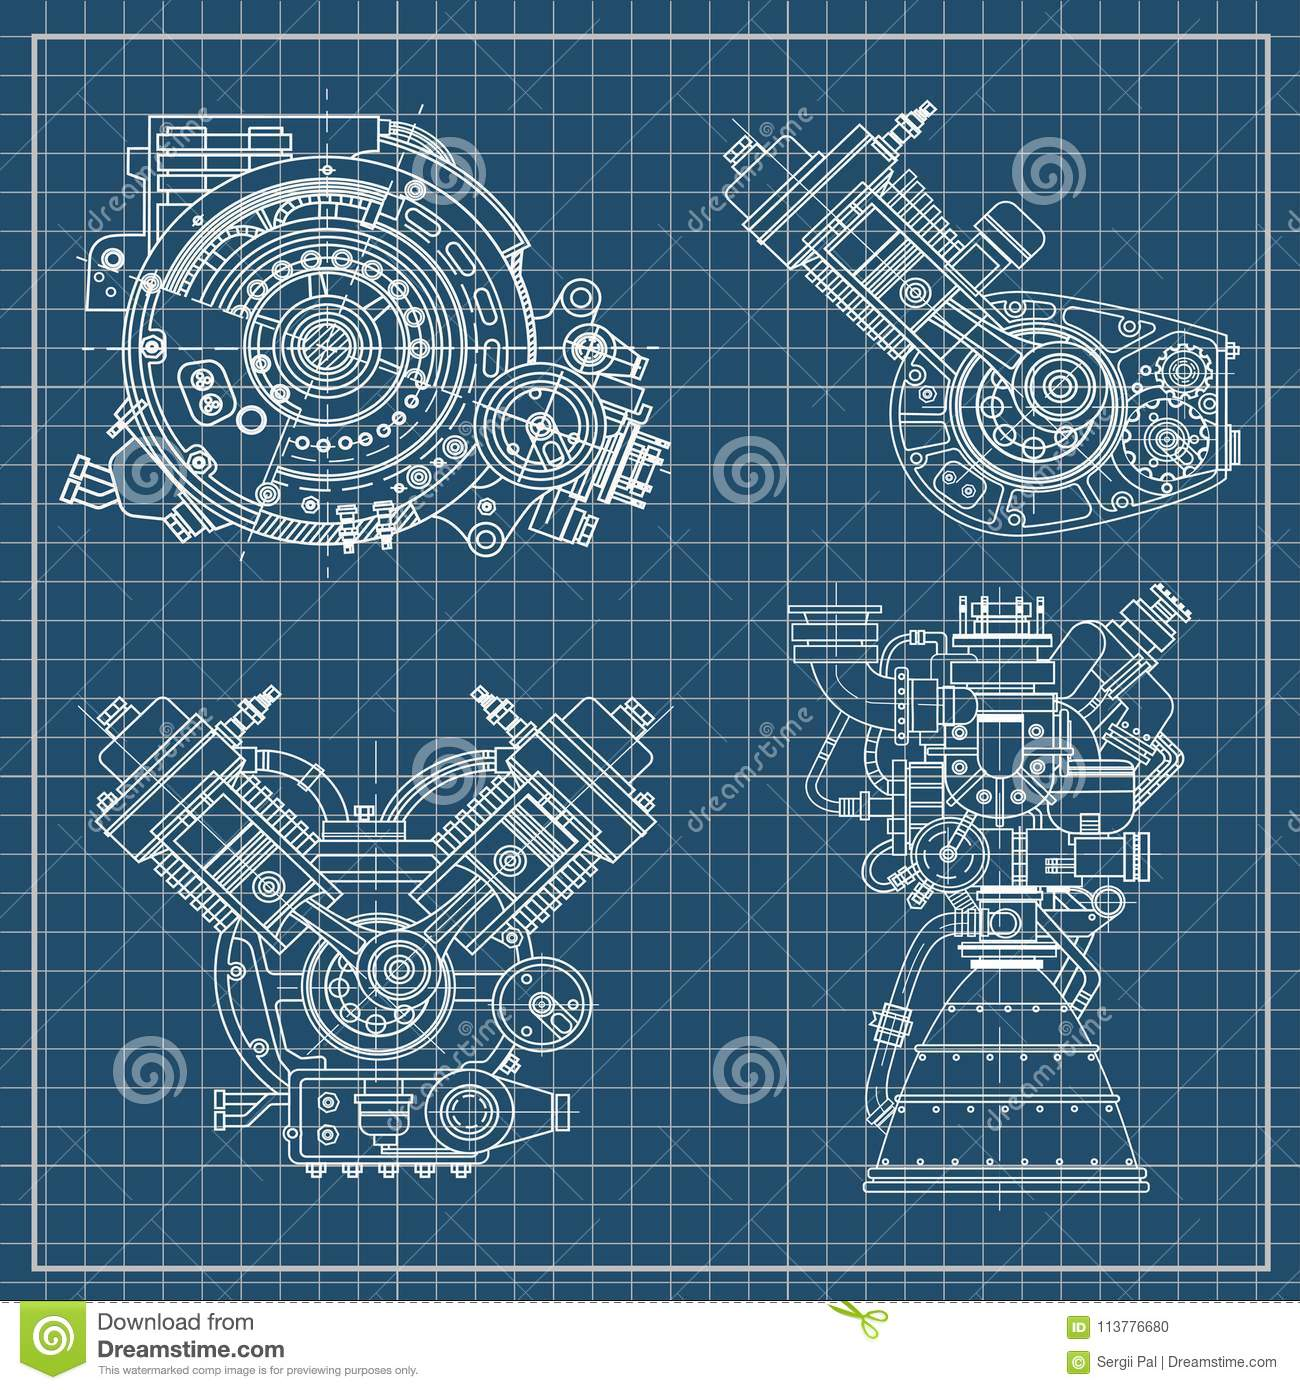 hight resolution of set of drawings of engines motor vehicle internal combustion engine motorcycle electric motor